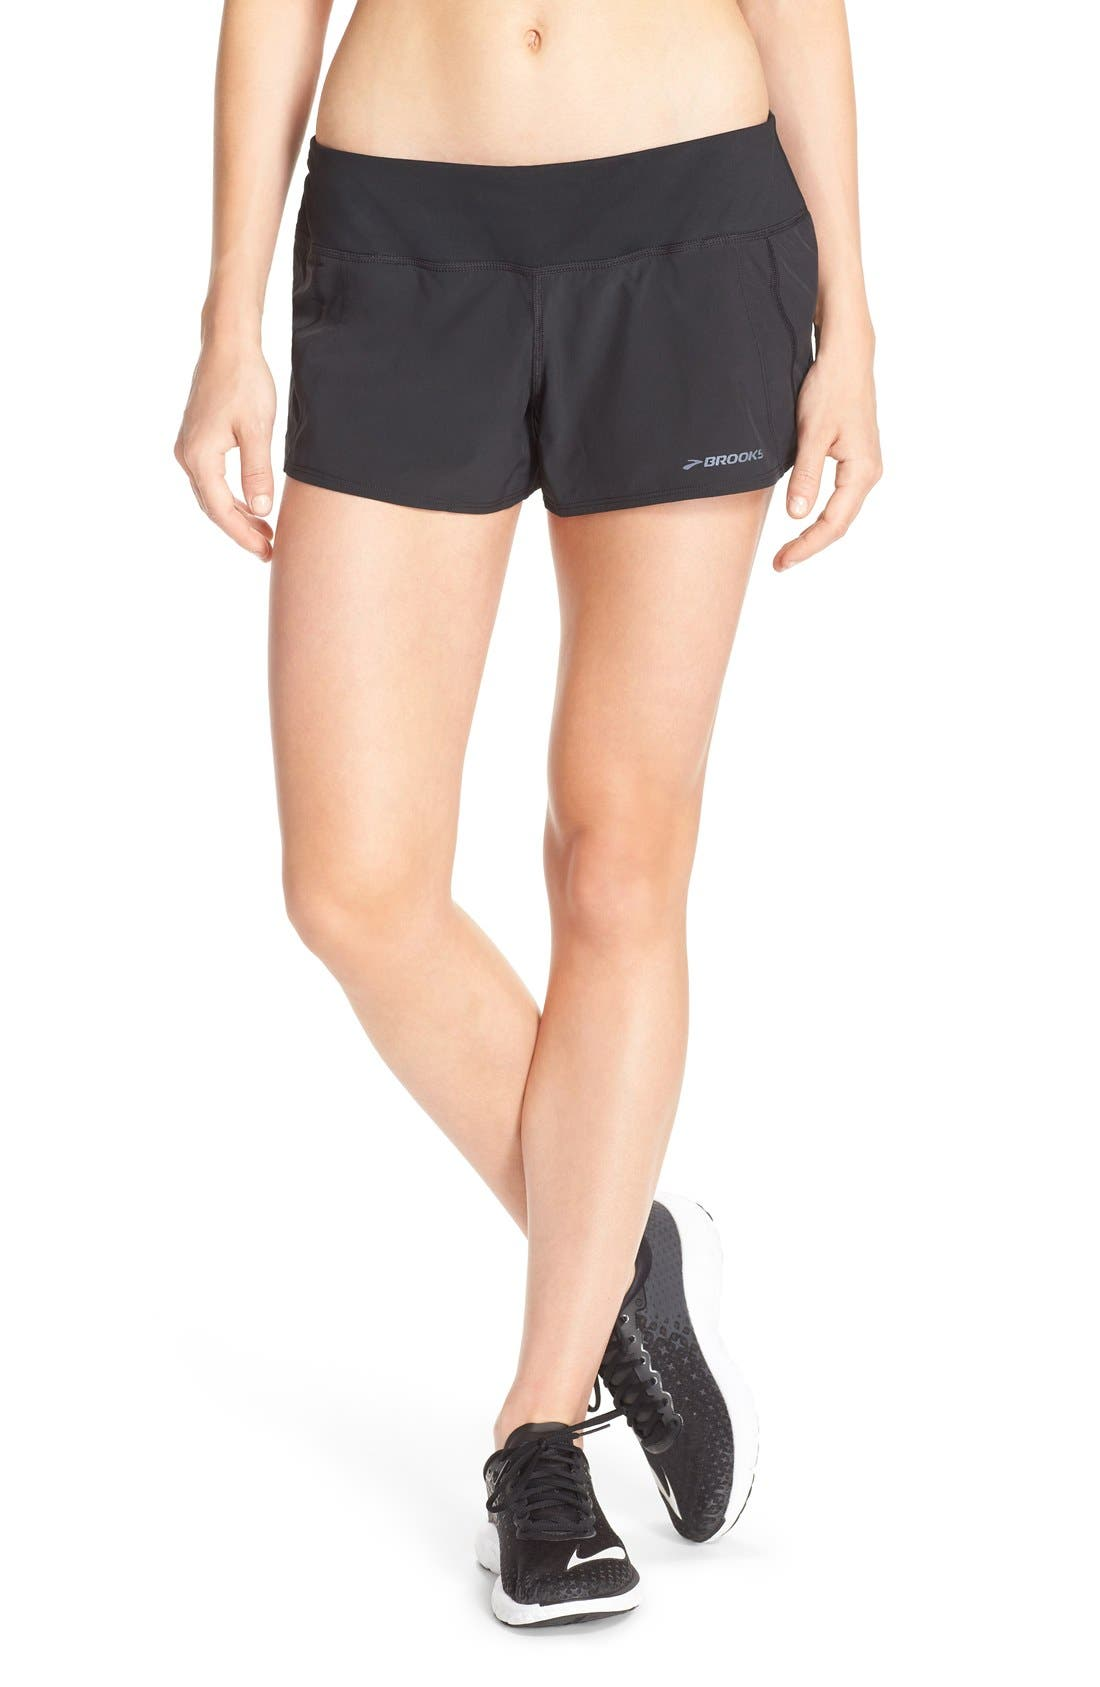 BROOKS 'Chaser 3' Running Shorts